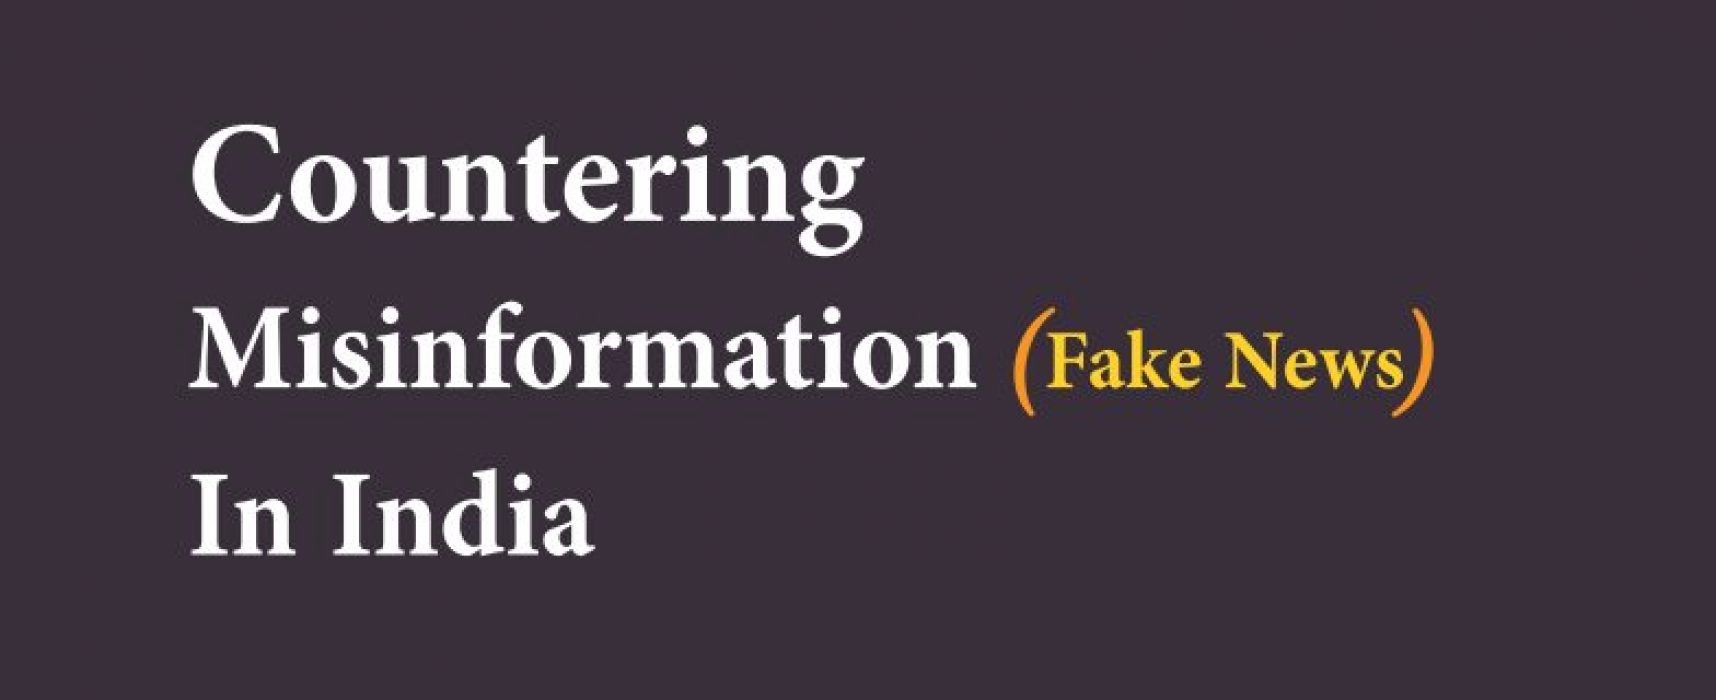 Countering misinformation (fake news) in India: solutions and strategies